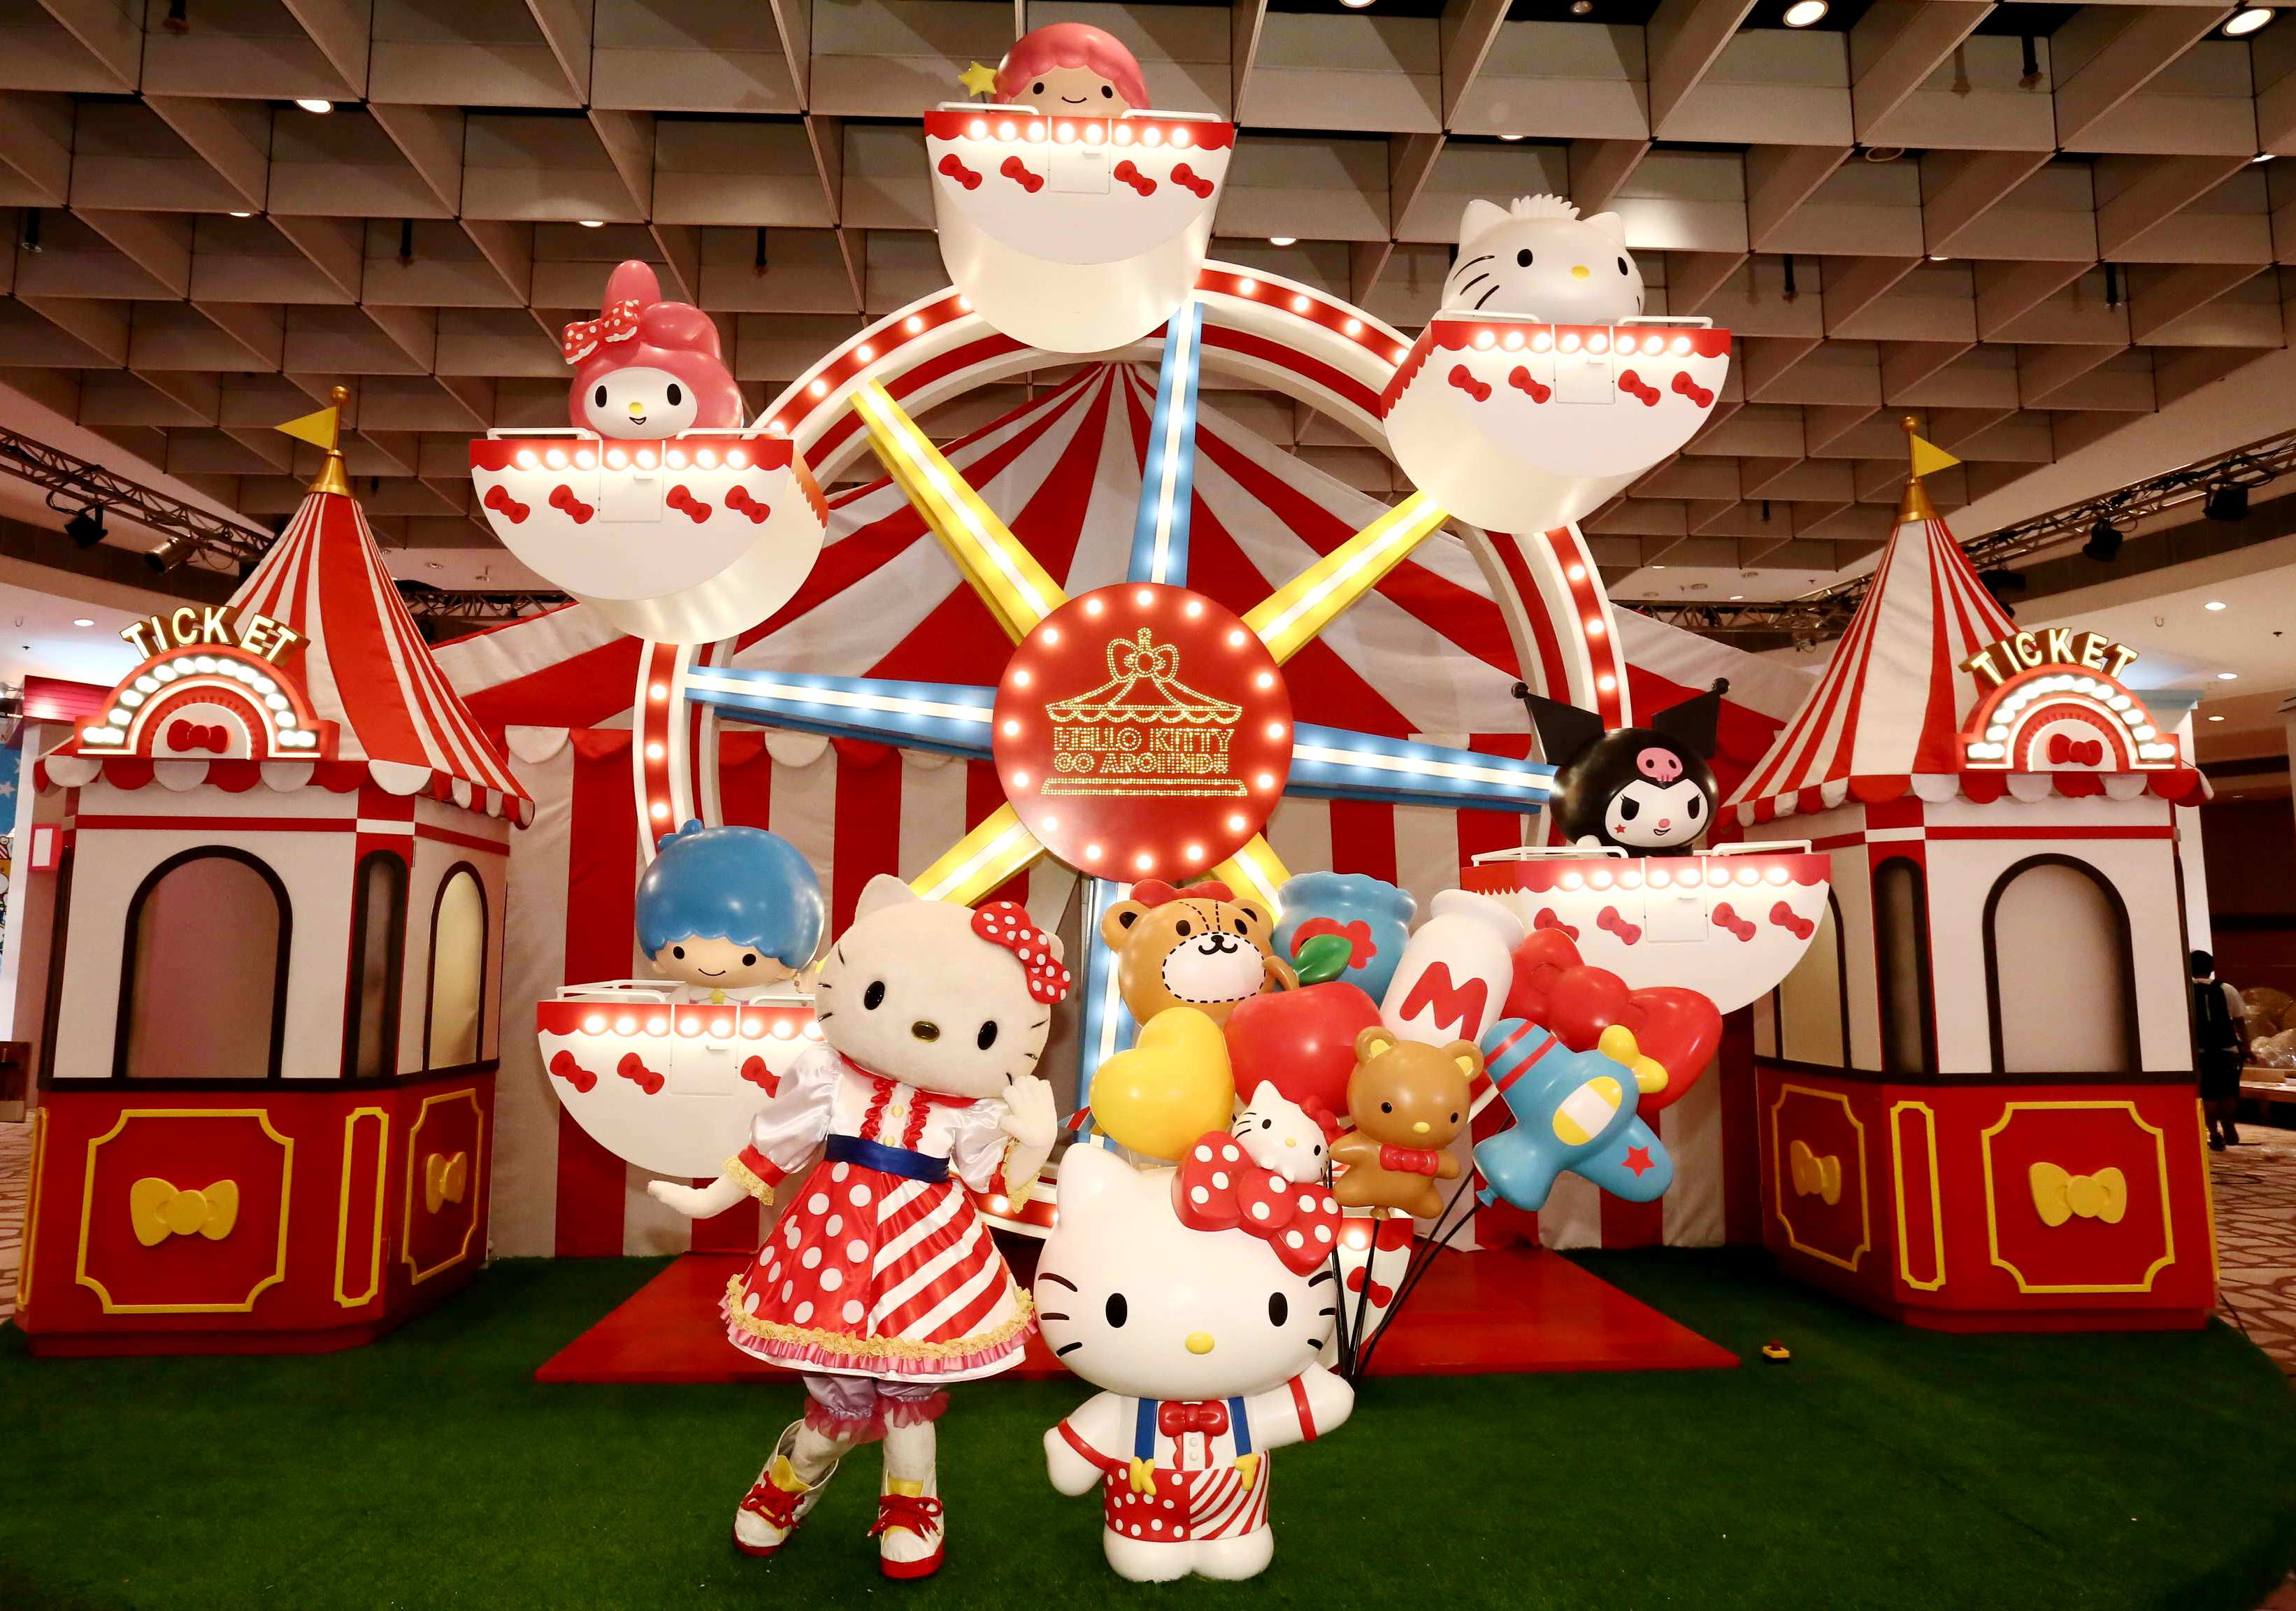 Get On Board The Sanrio Friend Express For A Fantasy Journey Through Theme Park